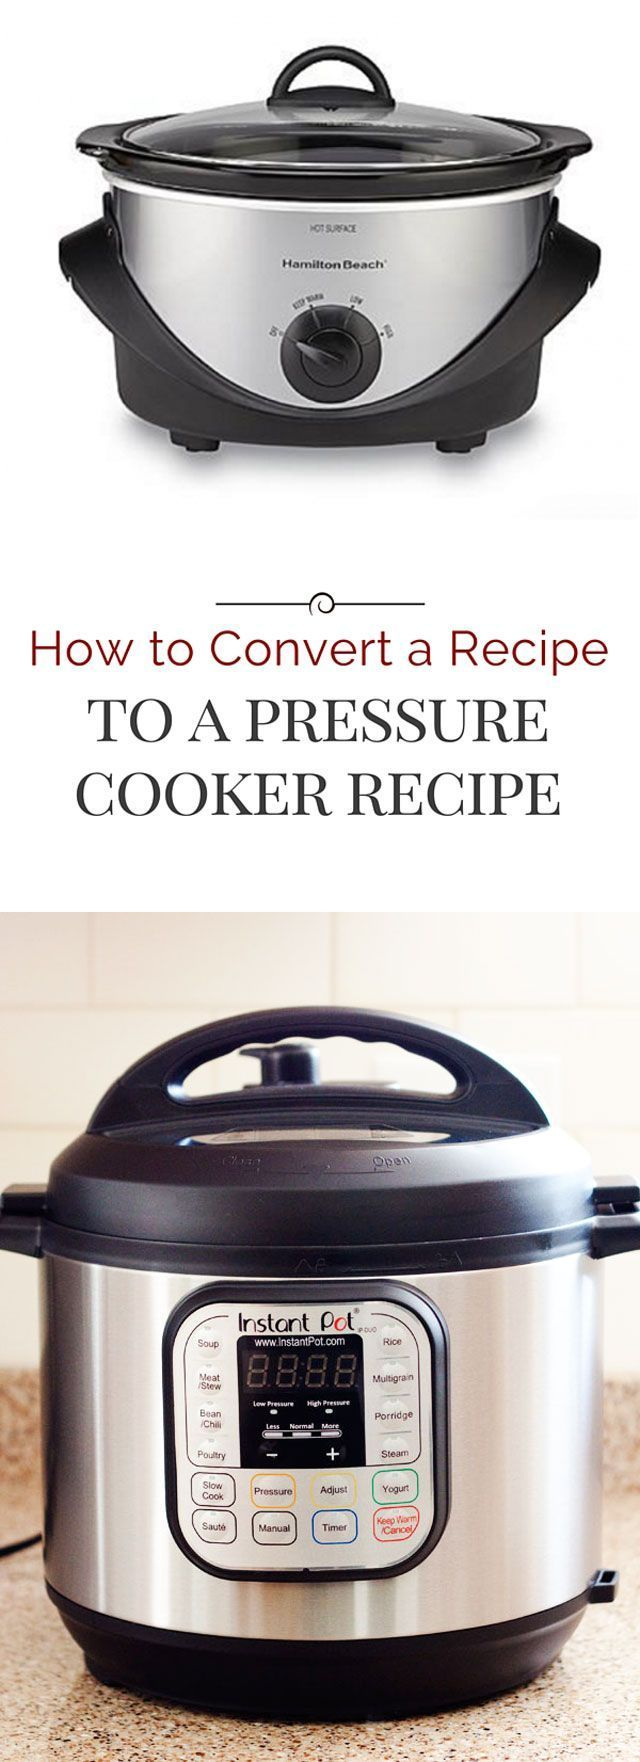 how to cook beef heart in pressure cooker